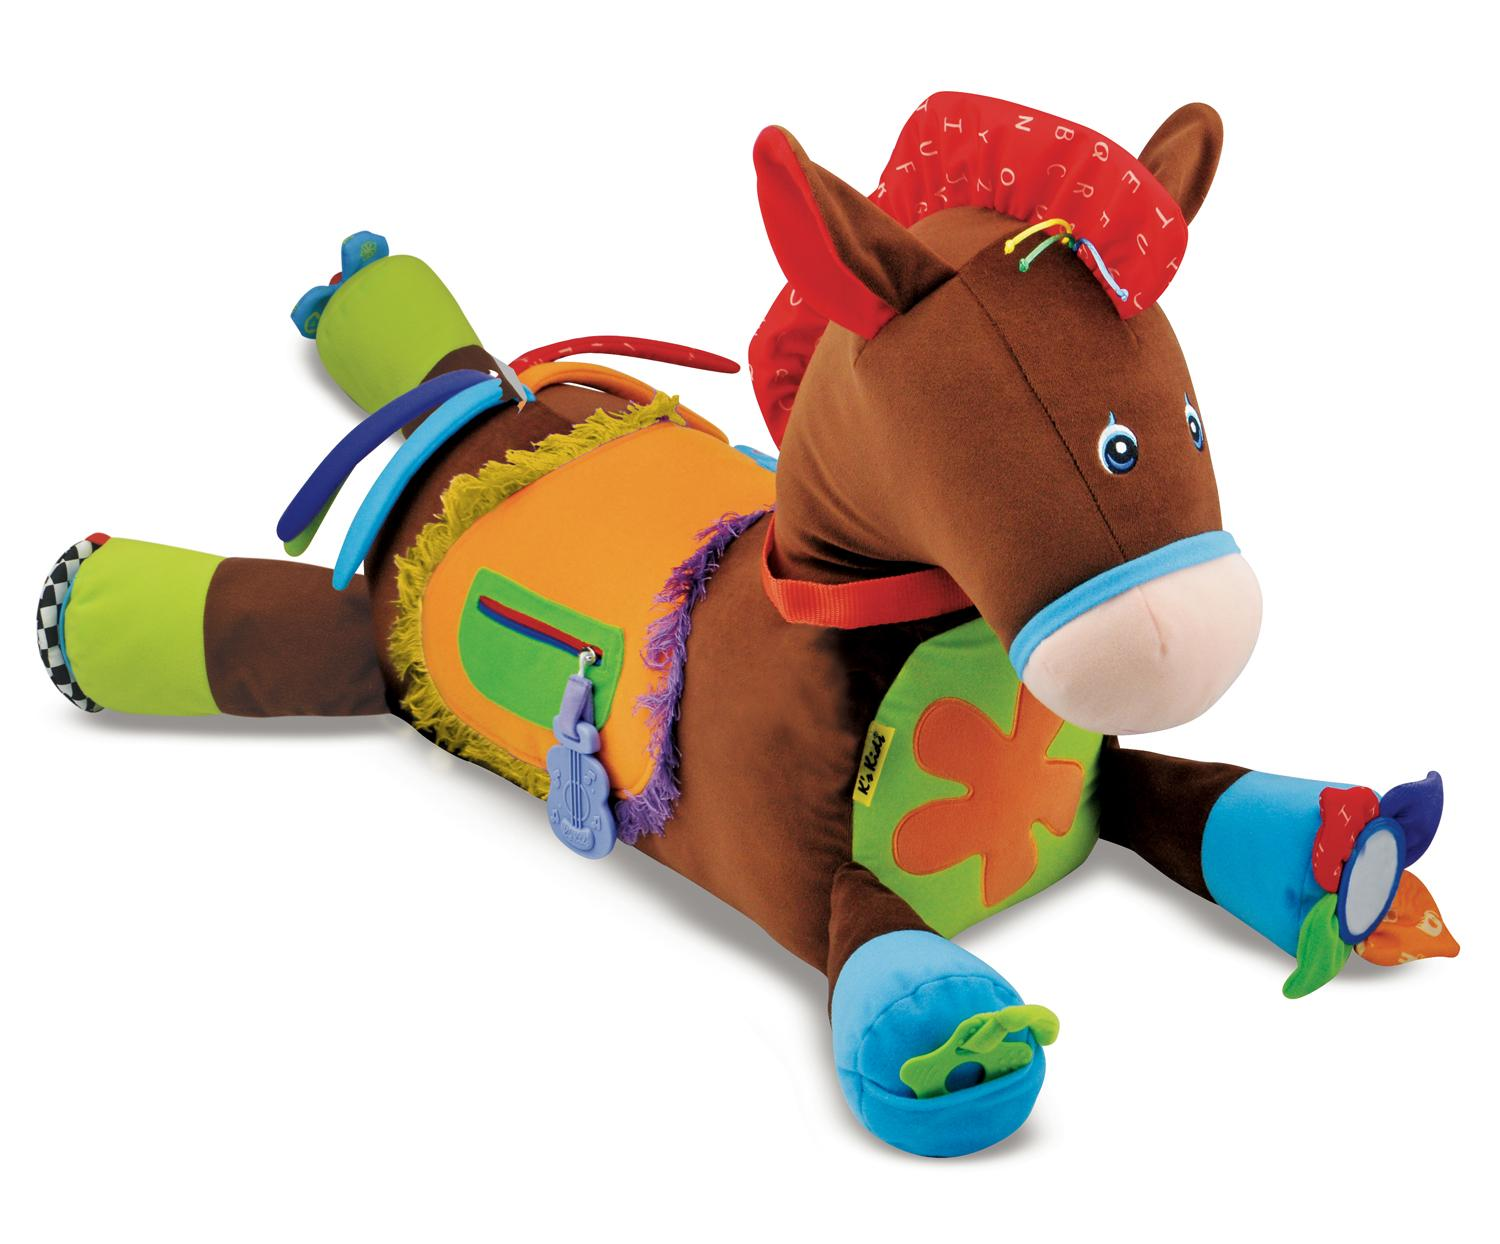 Melissa And Doug Toys : Amazon melissa doug giddy up and play baby activity